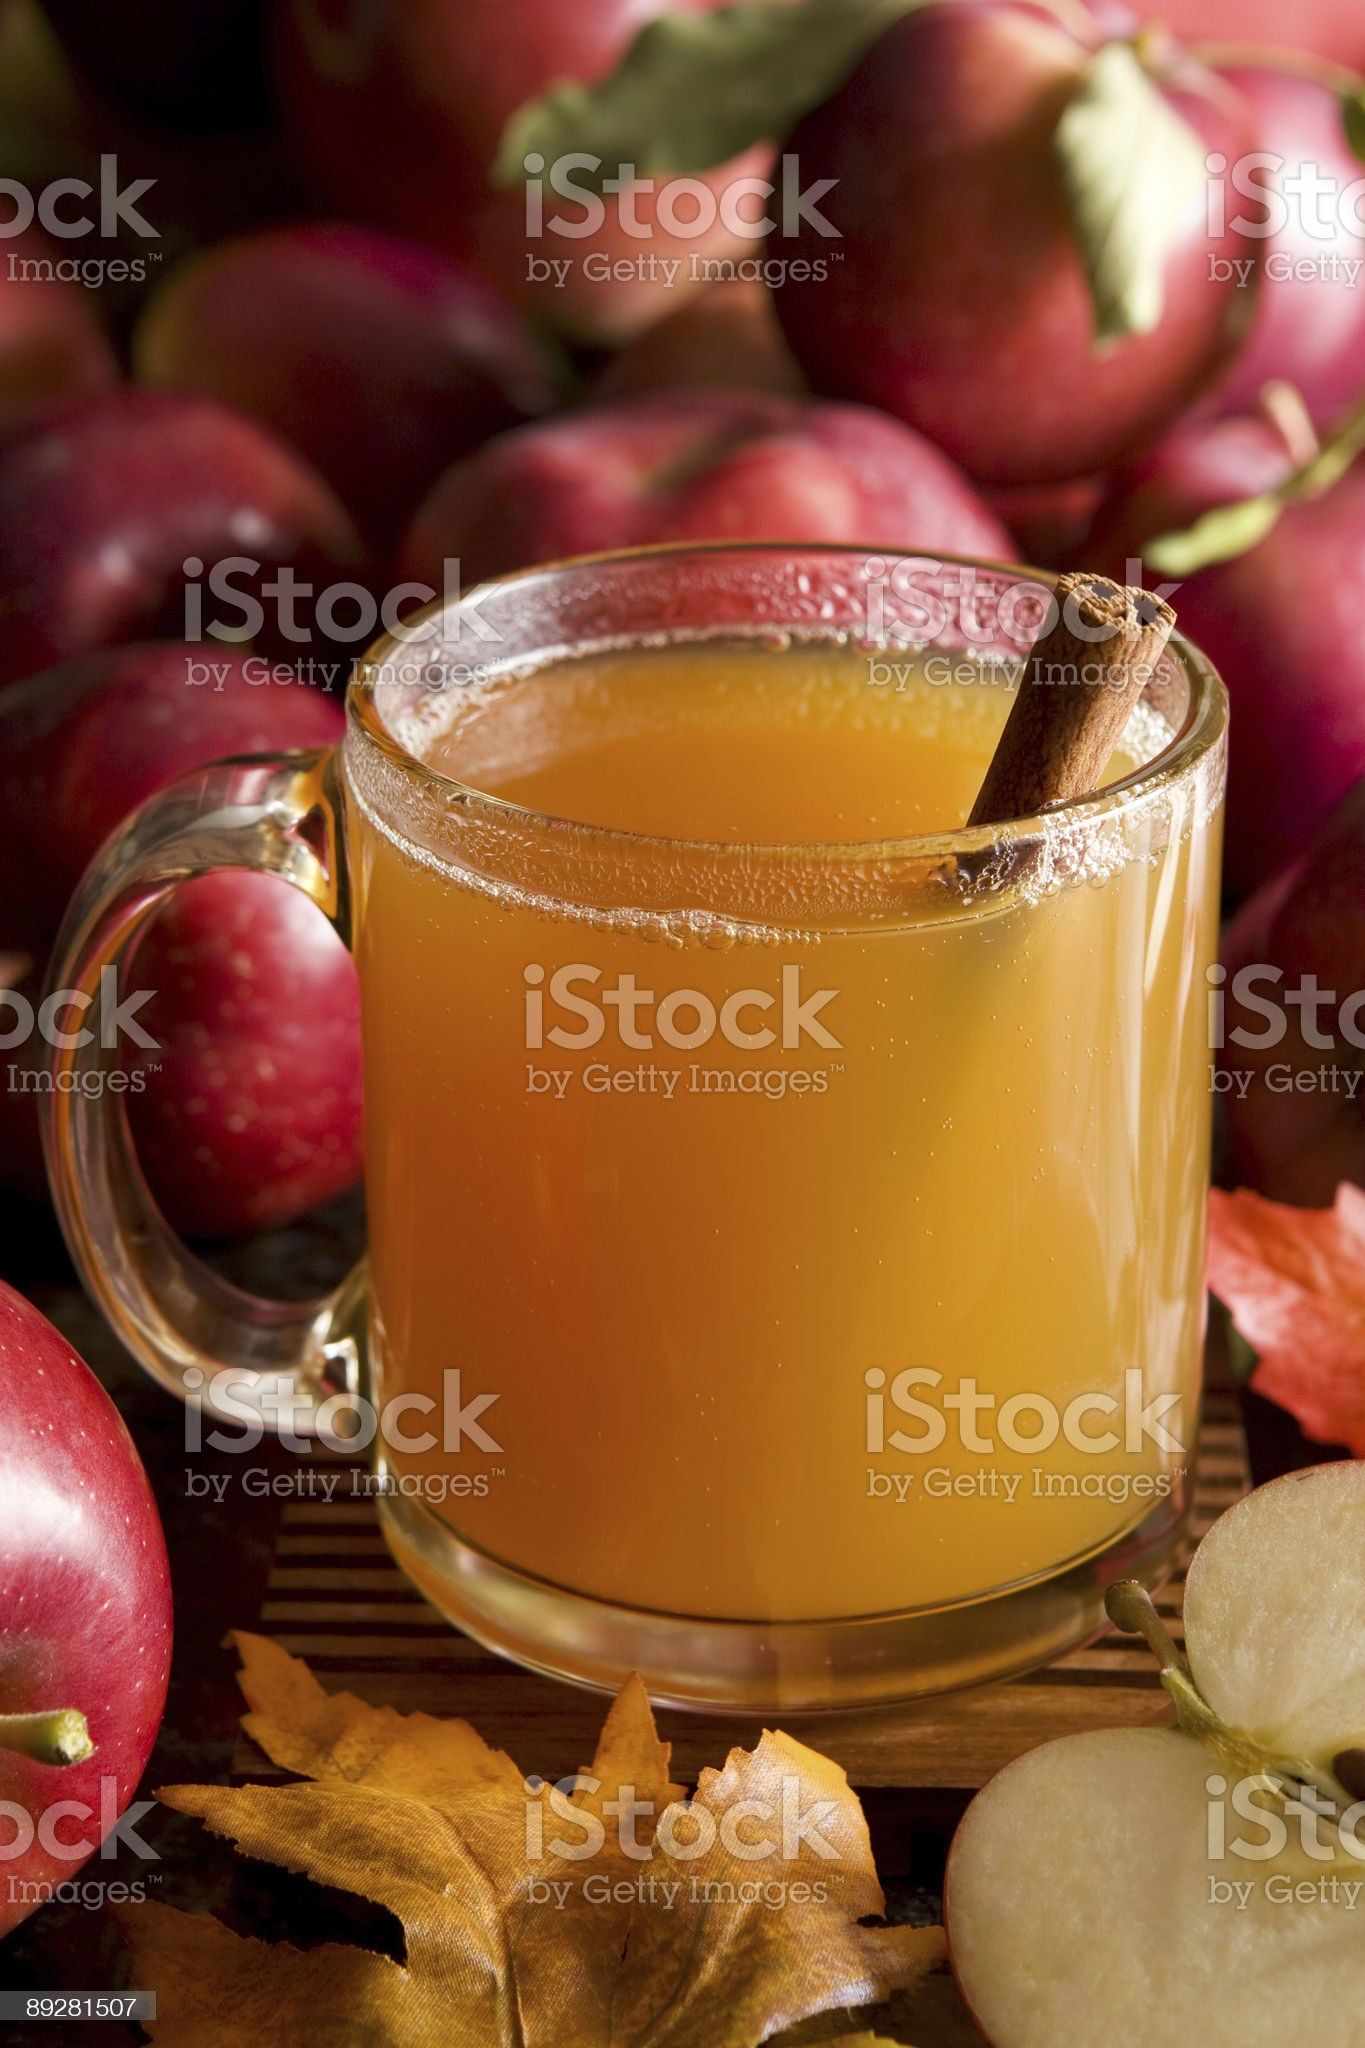 Apple cider in glass mug with cinnamon stick next to apples royalty-free stock photo